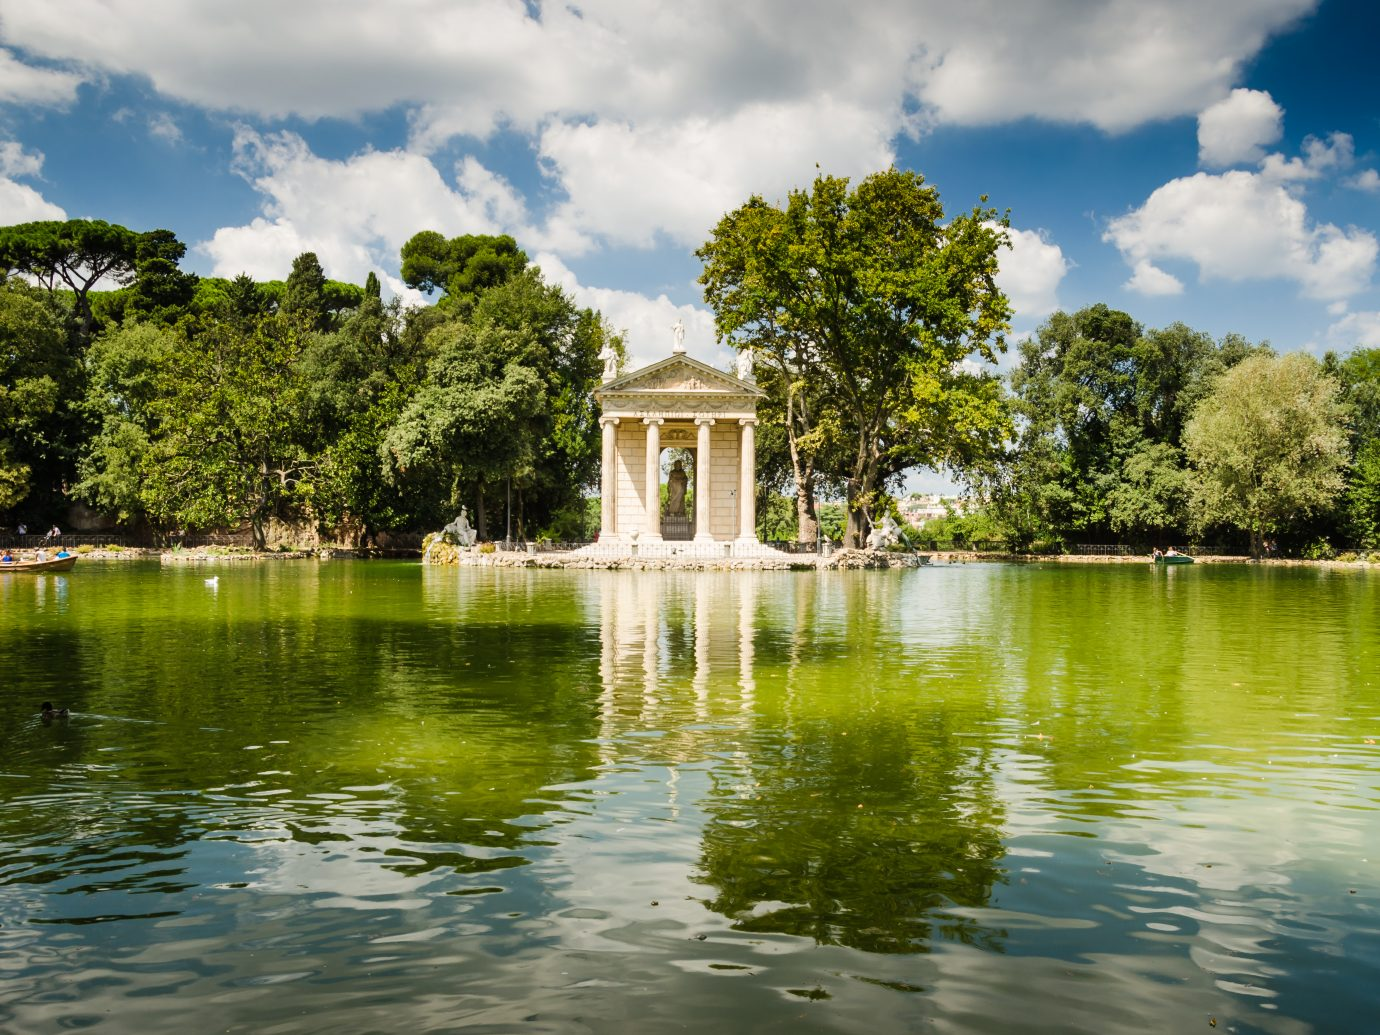 artificial lake on villa borgese garden